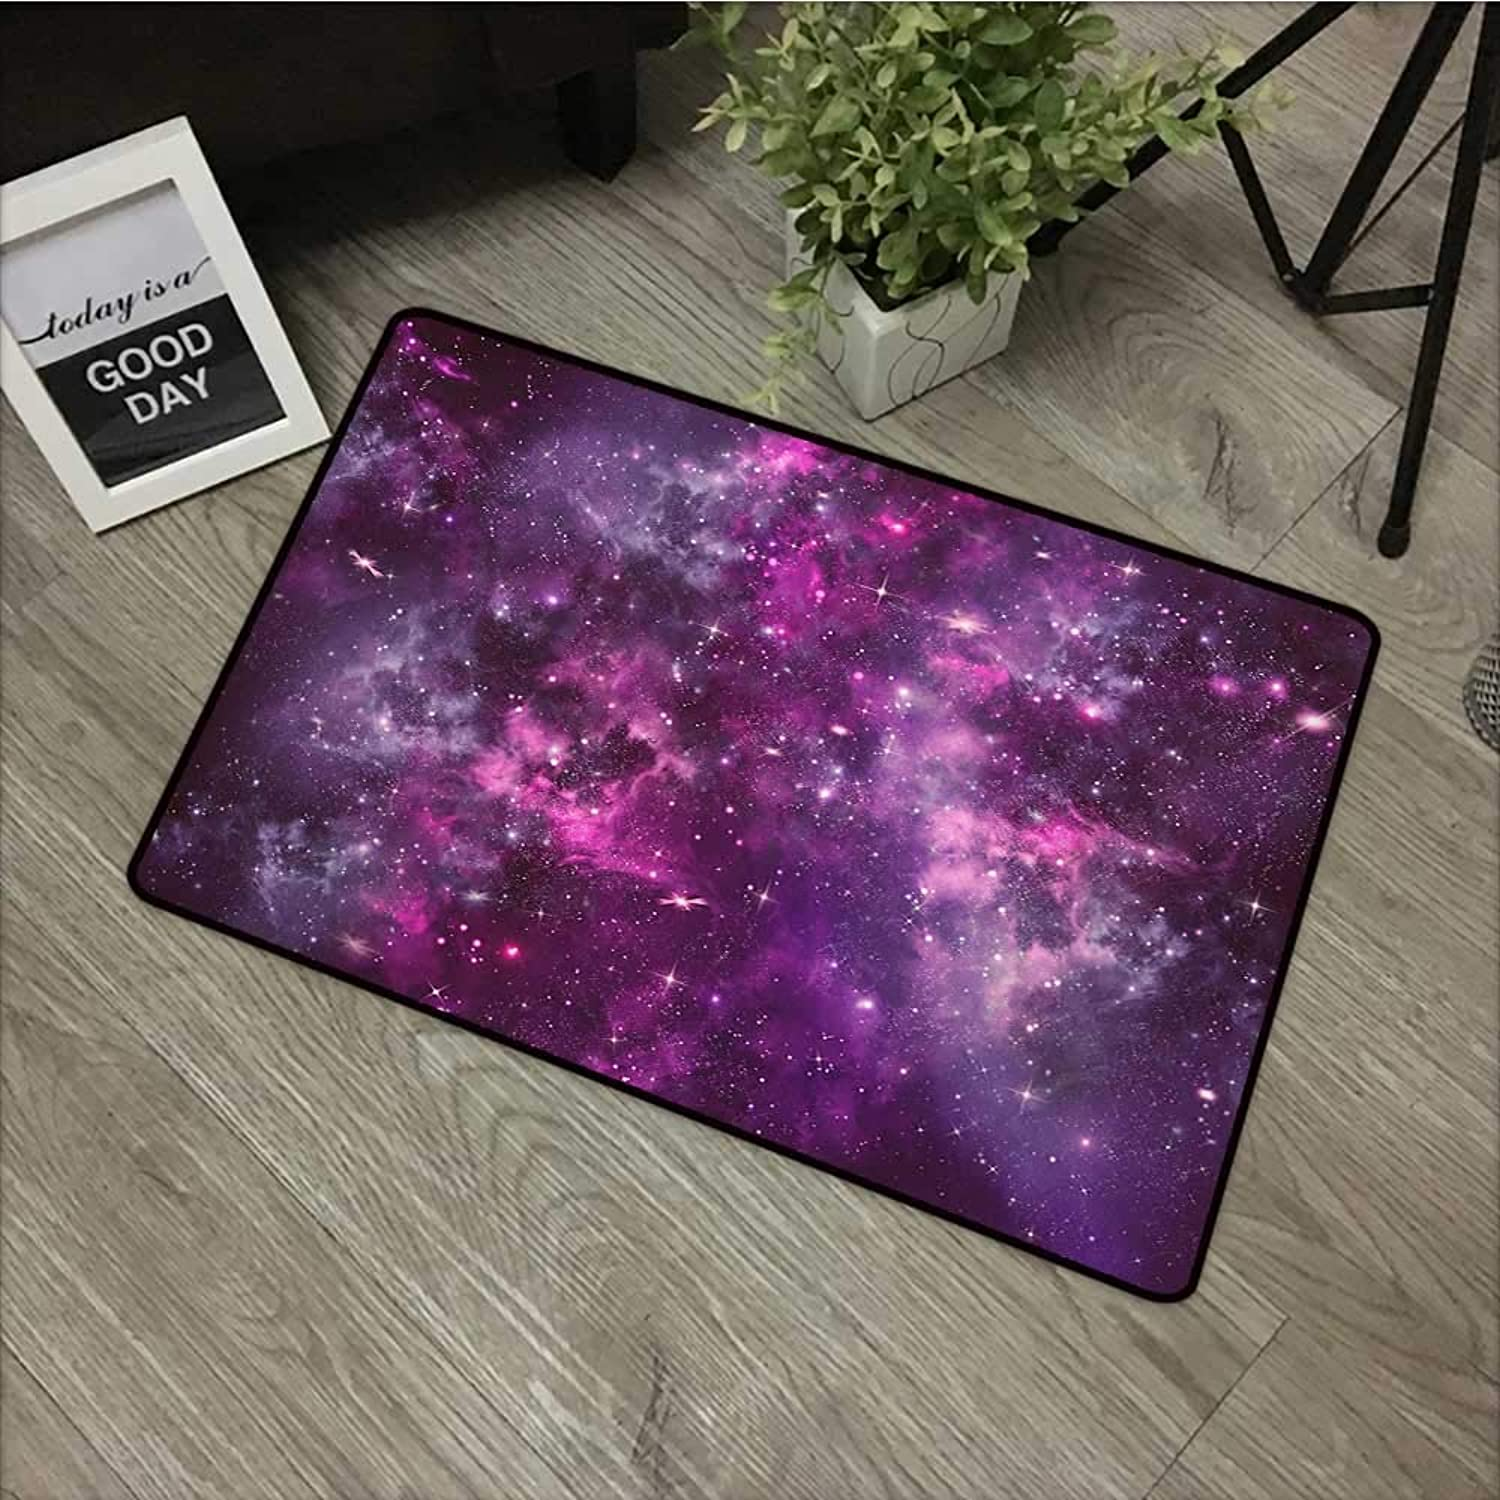 Square Door mat W35 x L59 INCH Purple,Nebula Gas Cloud Deep Dark in Outer Space with Star Clusters Galaxy Infinity Solar Sky,Purple with Non-Slip Backing Door Mat Carpet